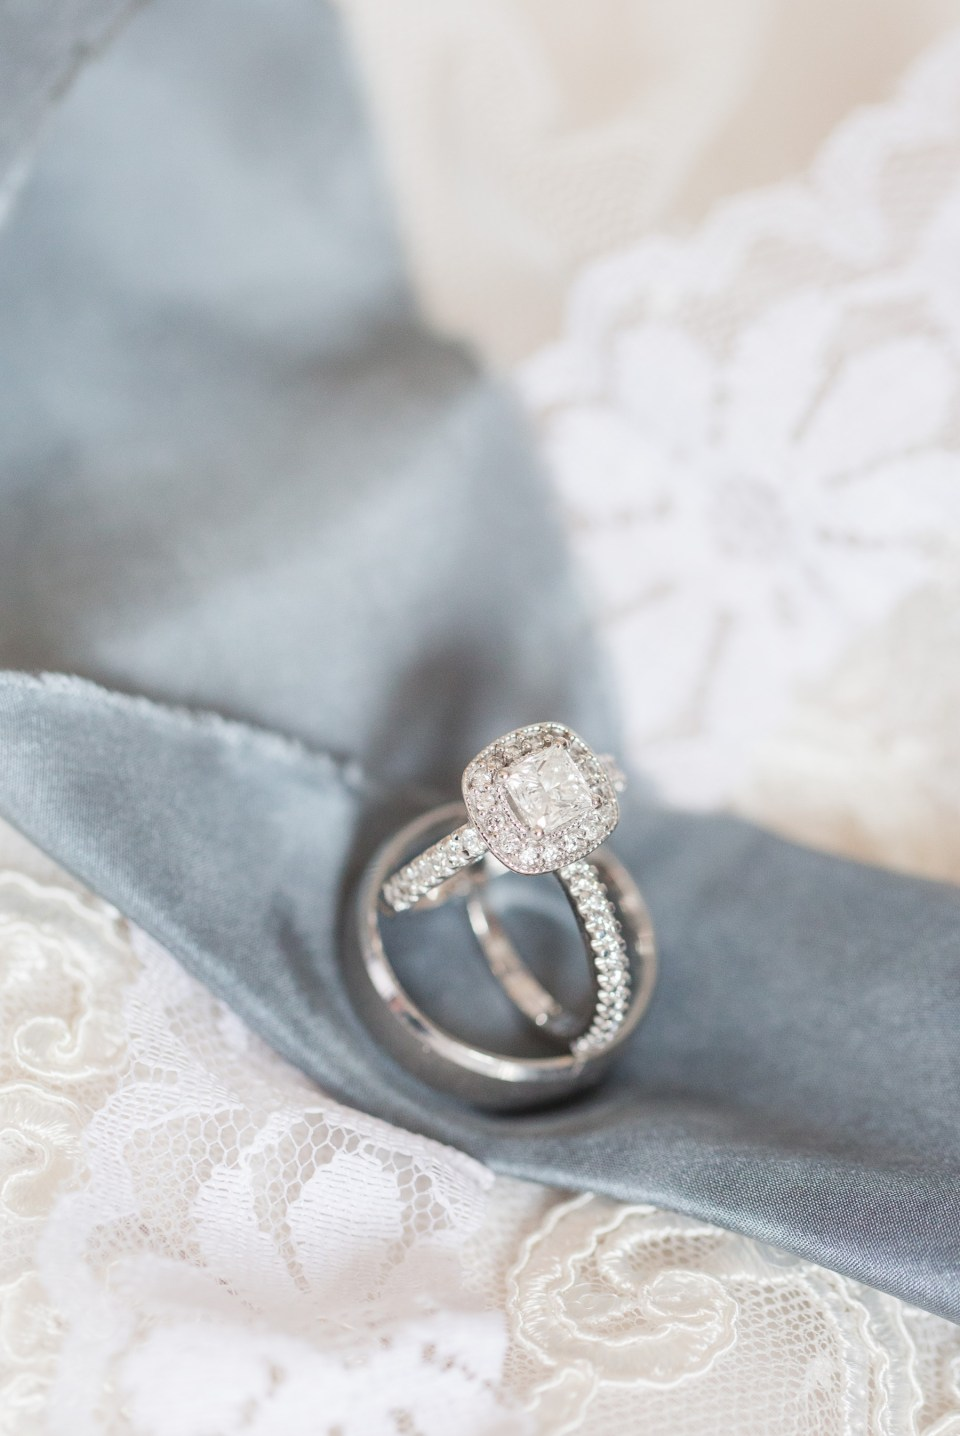 Photo of a halo style engagement ring balancing on a wedding band.